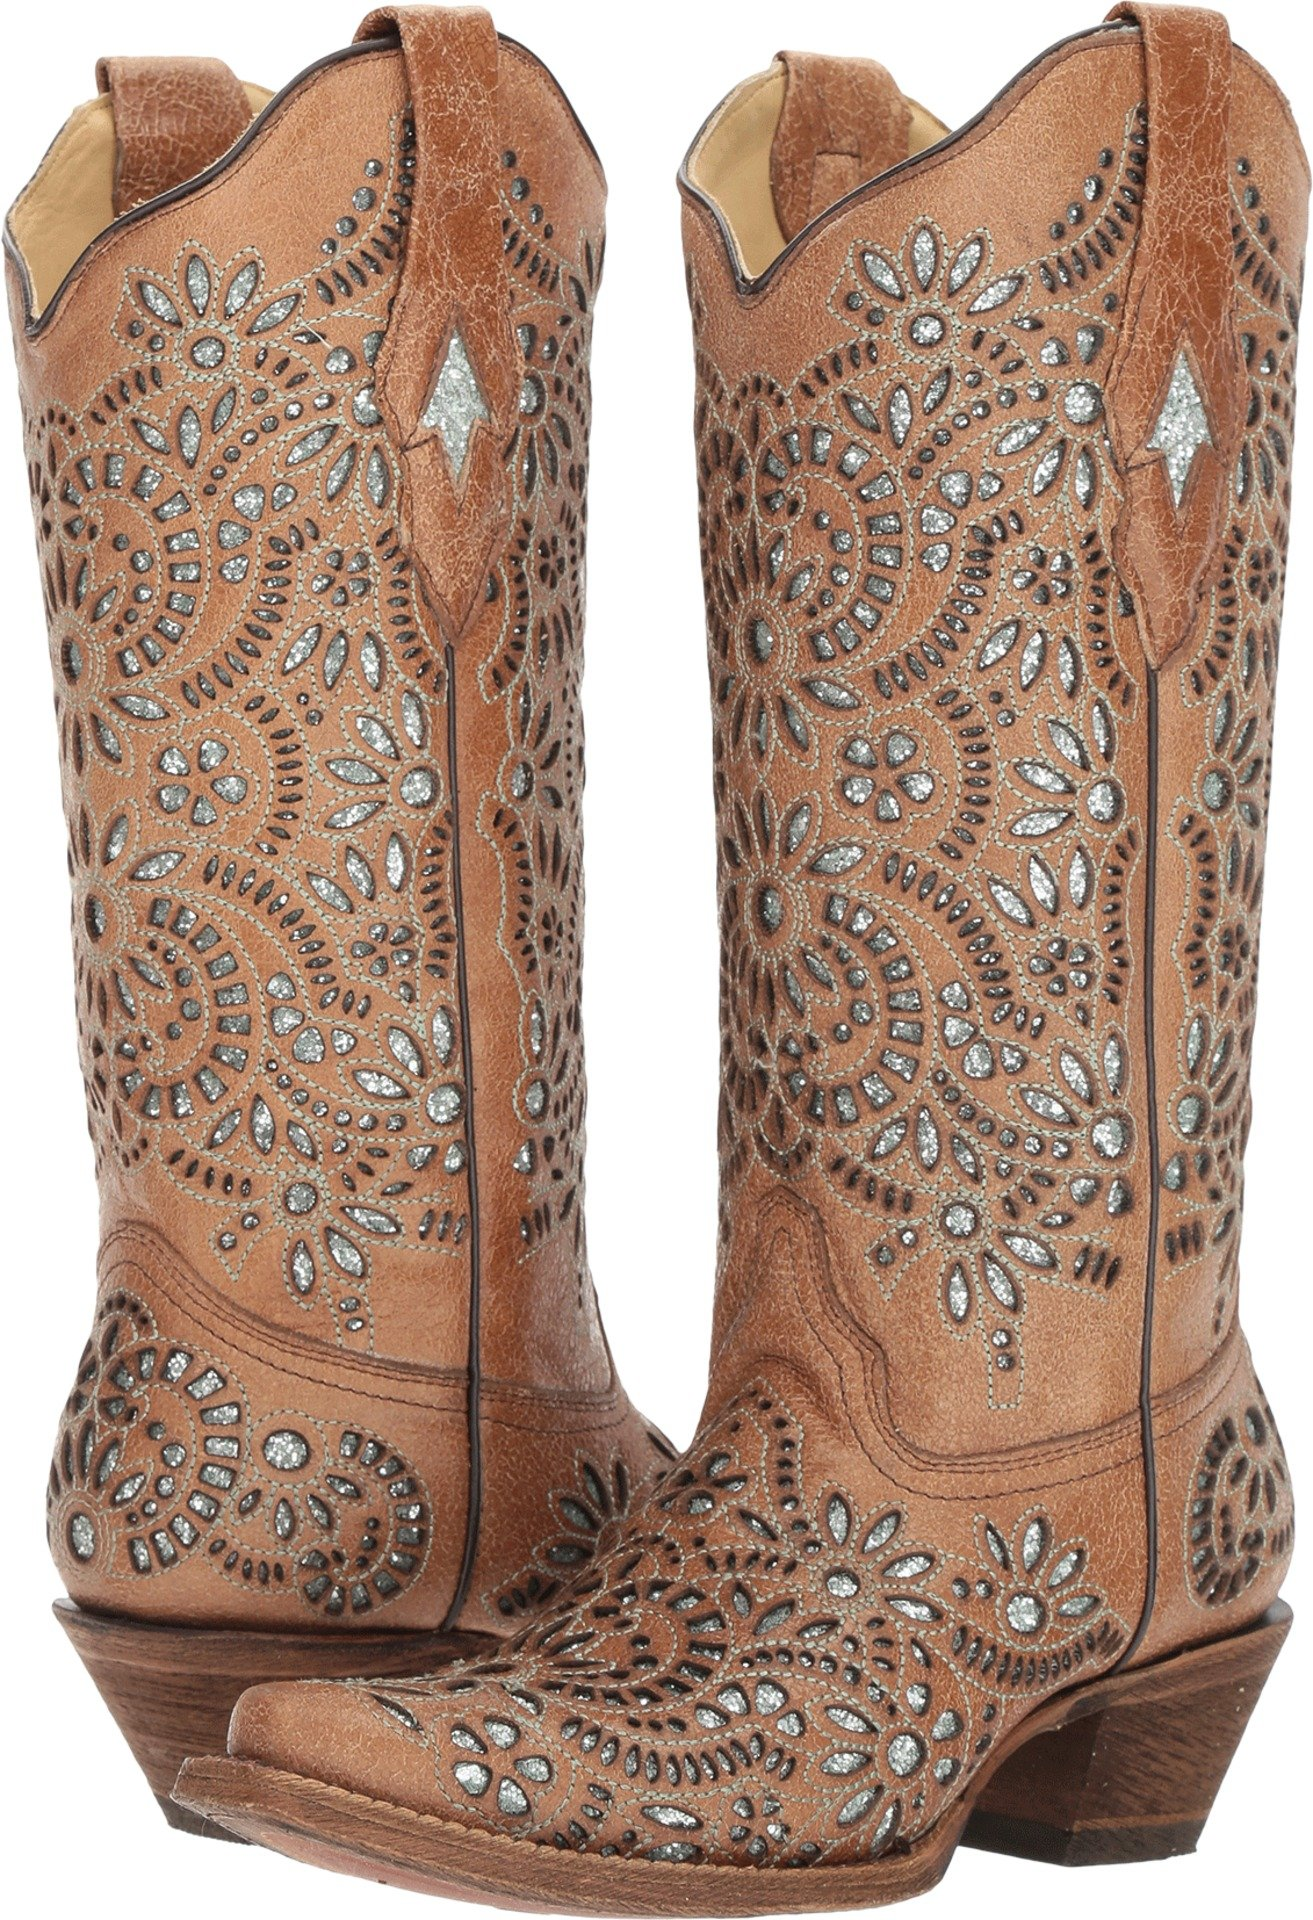 Corral Boots Women's A3352 Brown 9.5 B US by Corral Boots